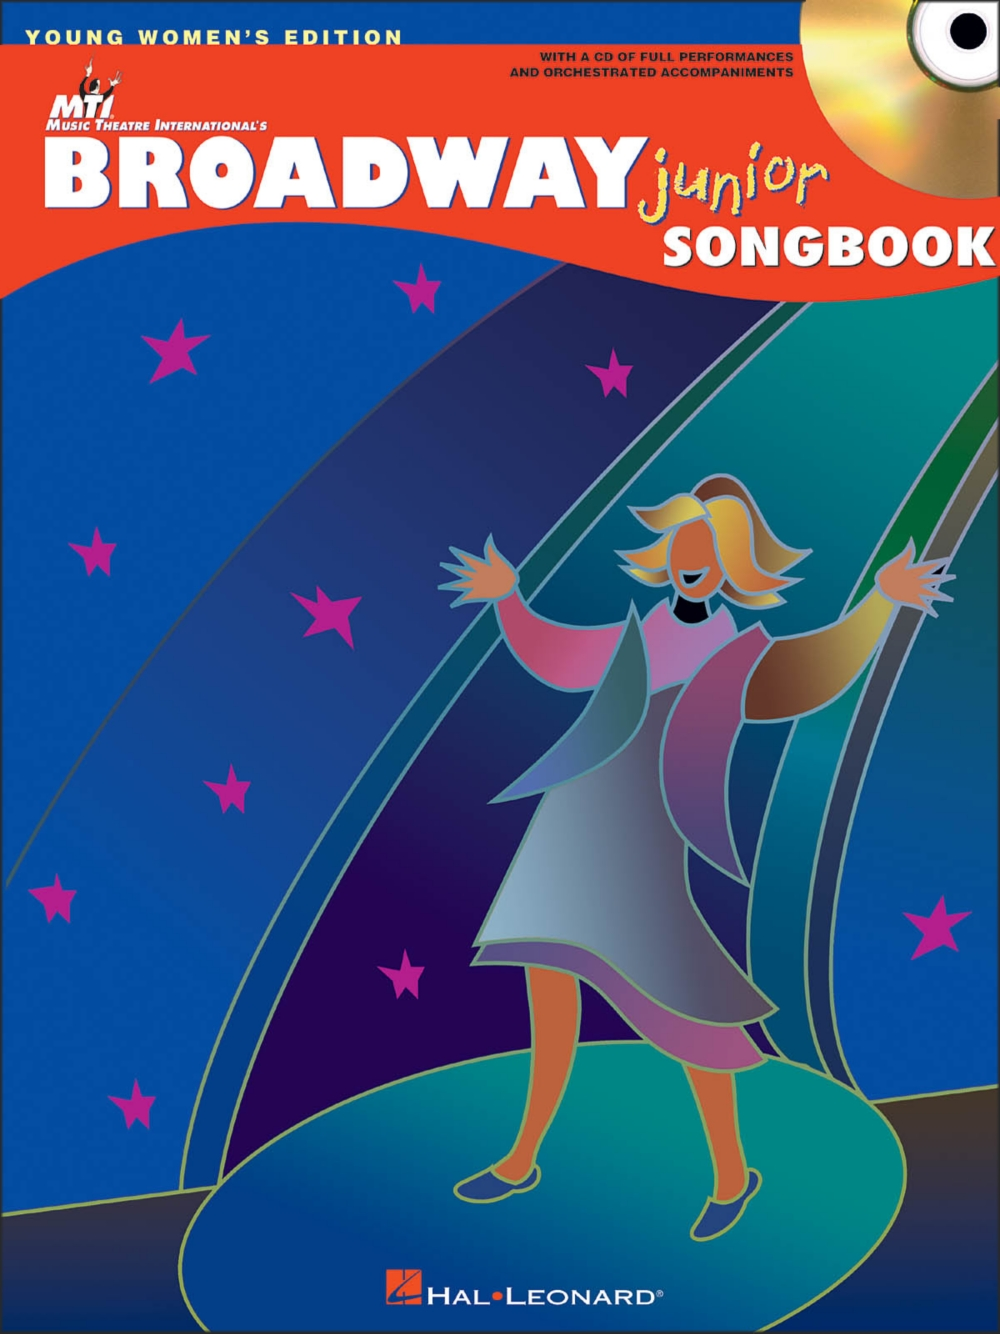 Hal Leonard Broadway Junior Songbook Young Women's Editon Book CD by